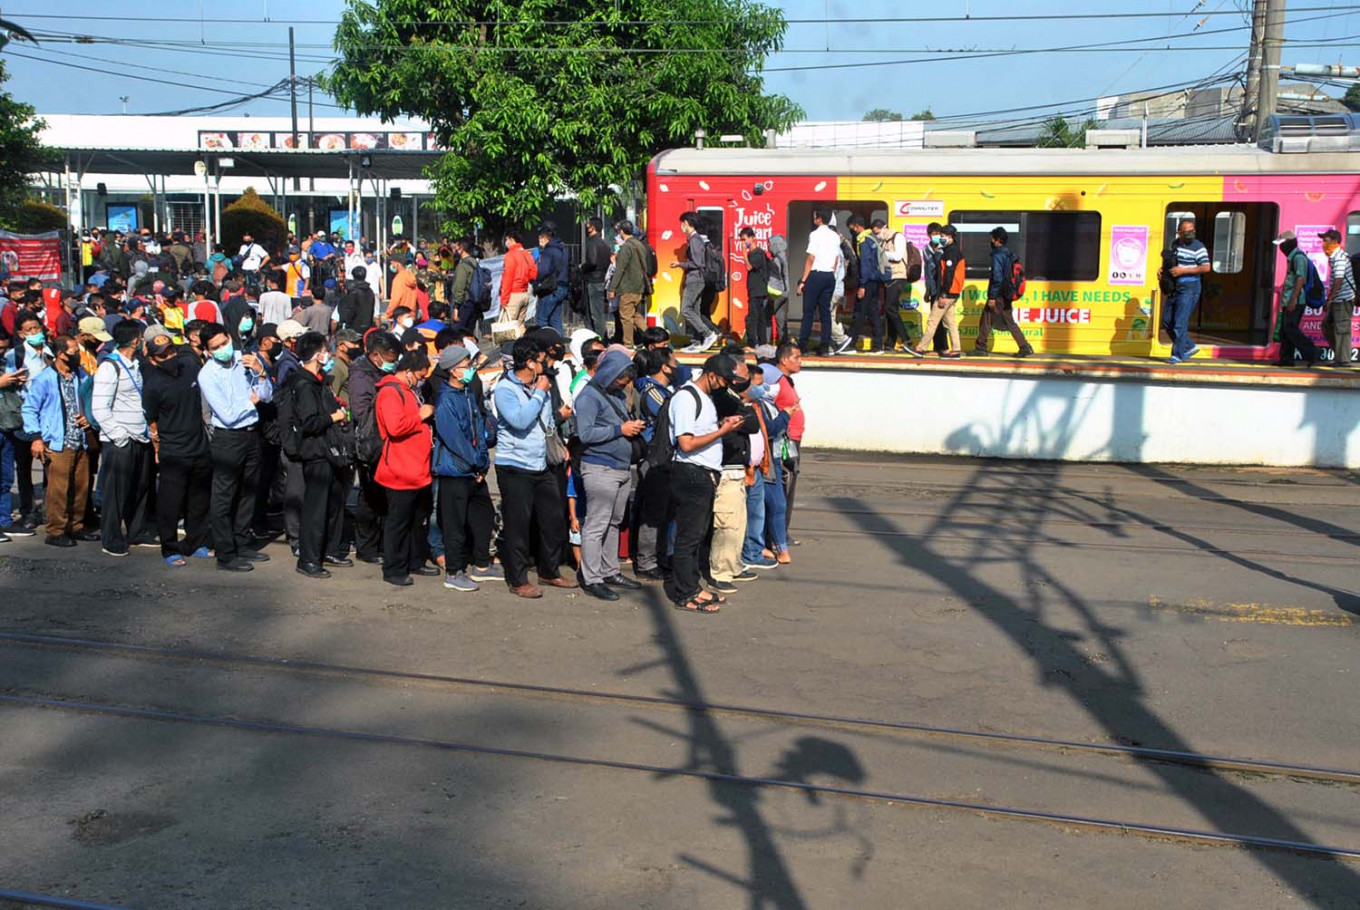 Luhut decides against Greater Jakarta's calls for halt to Commuter Line during PSBB